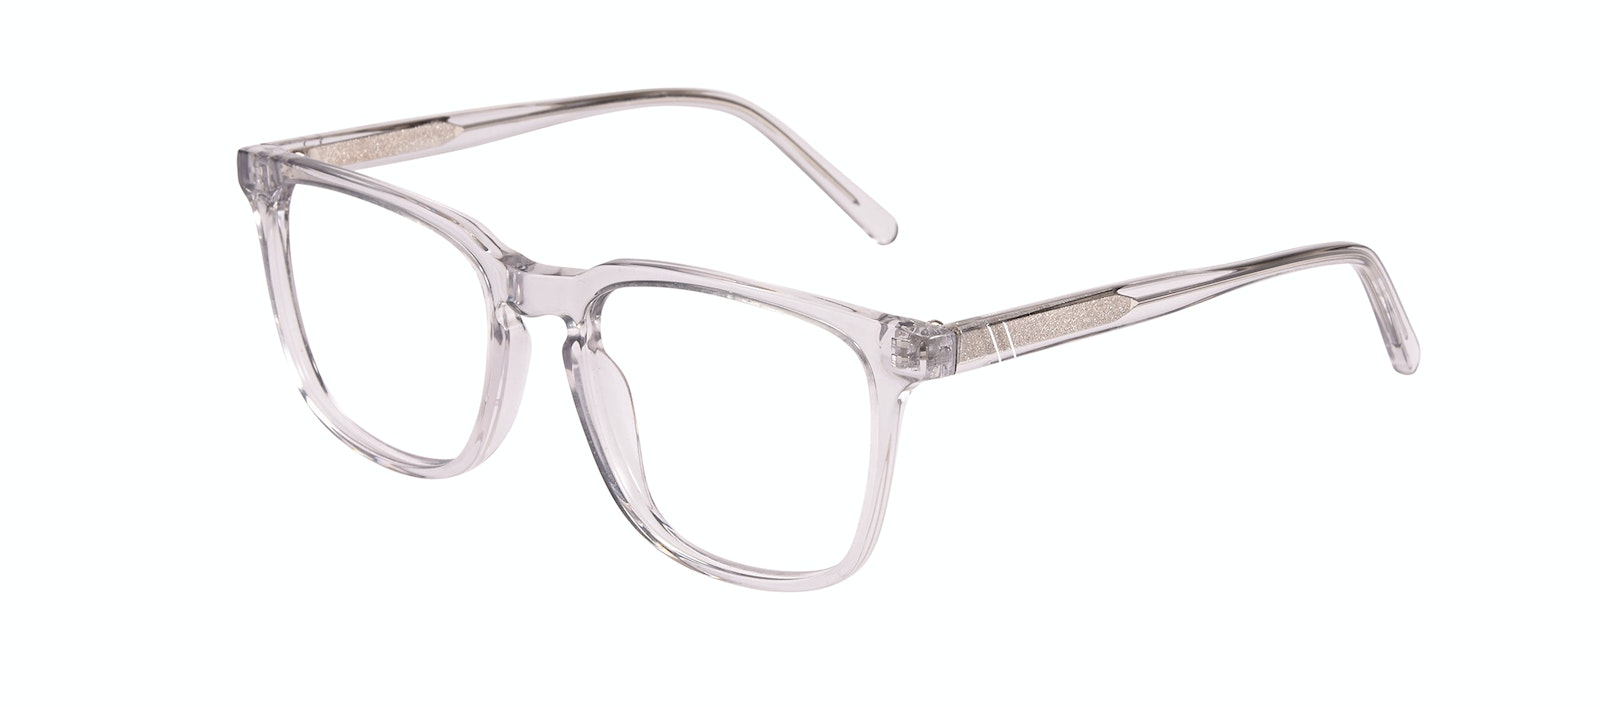 Affordable Fashion Glasses Rectangle Eyeglasses Men Trace Grey Tilt